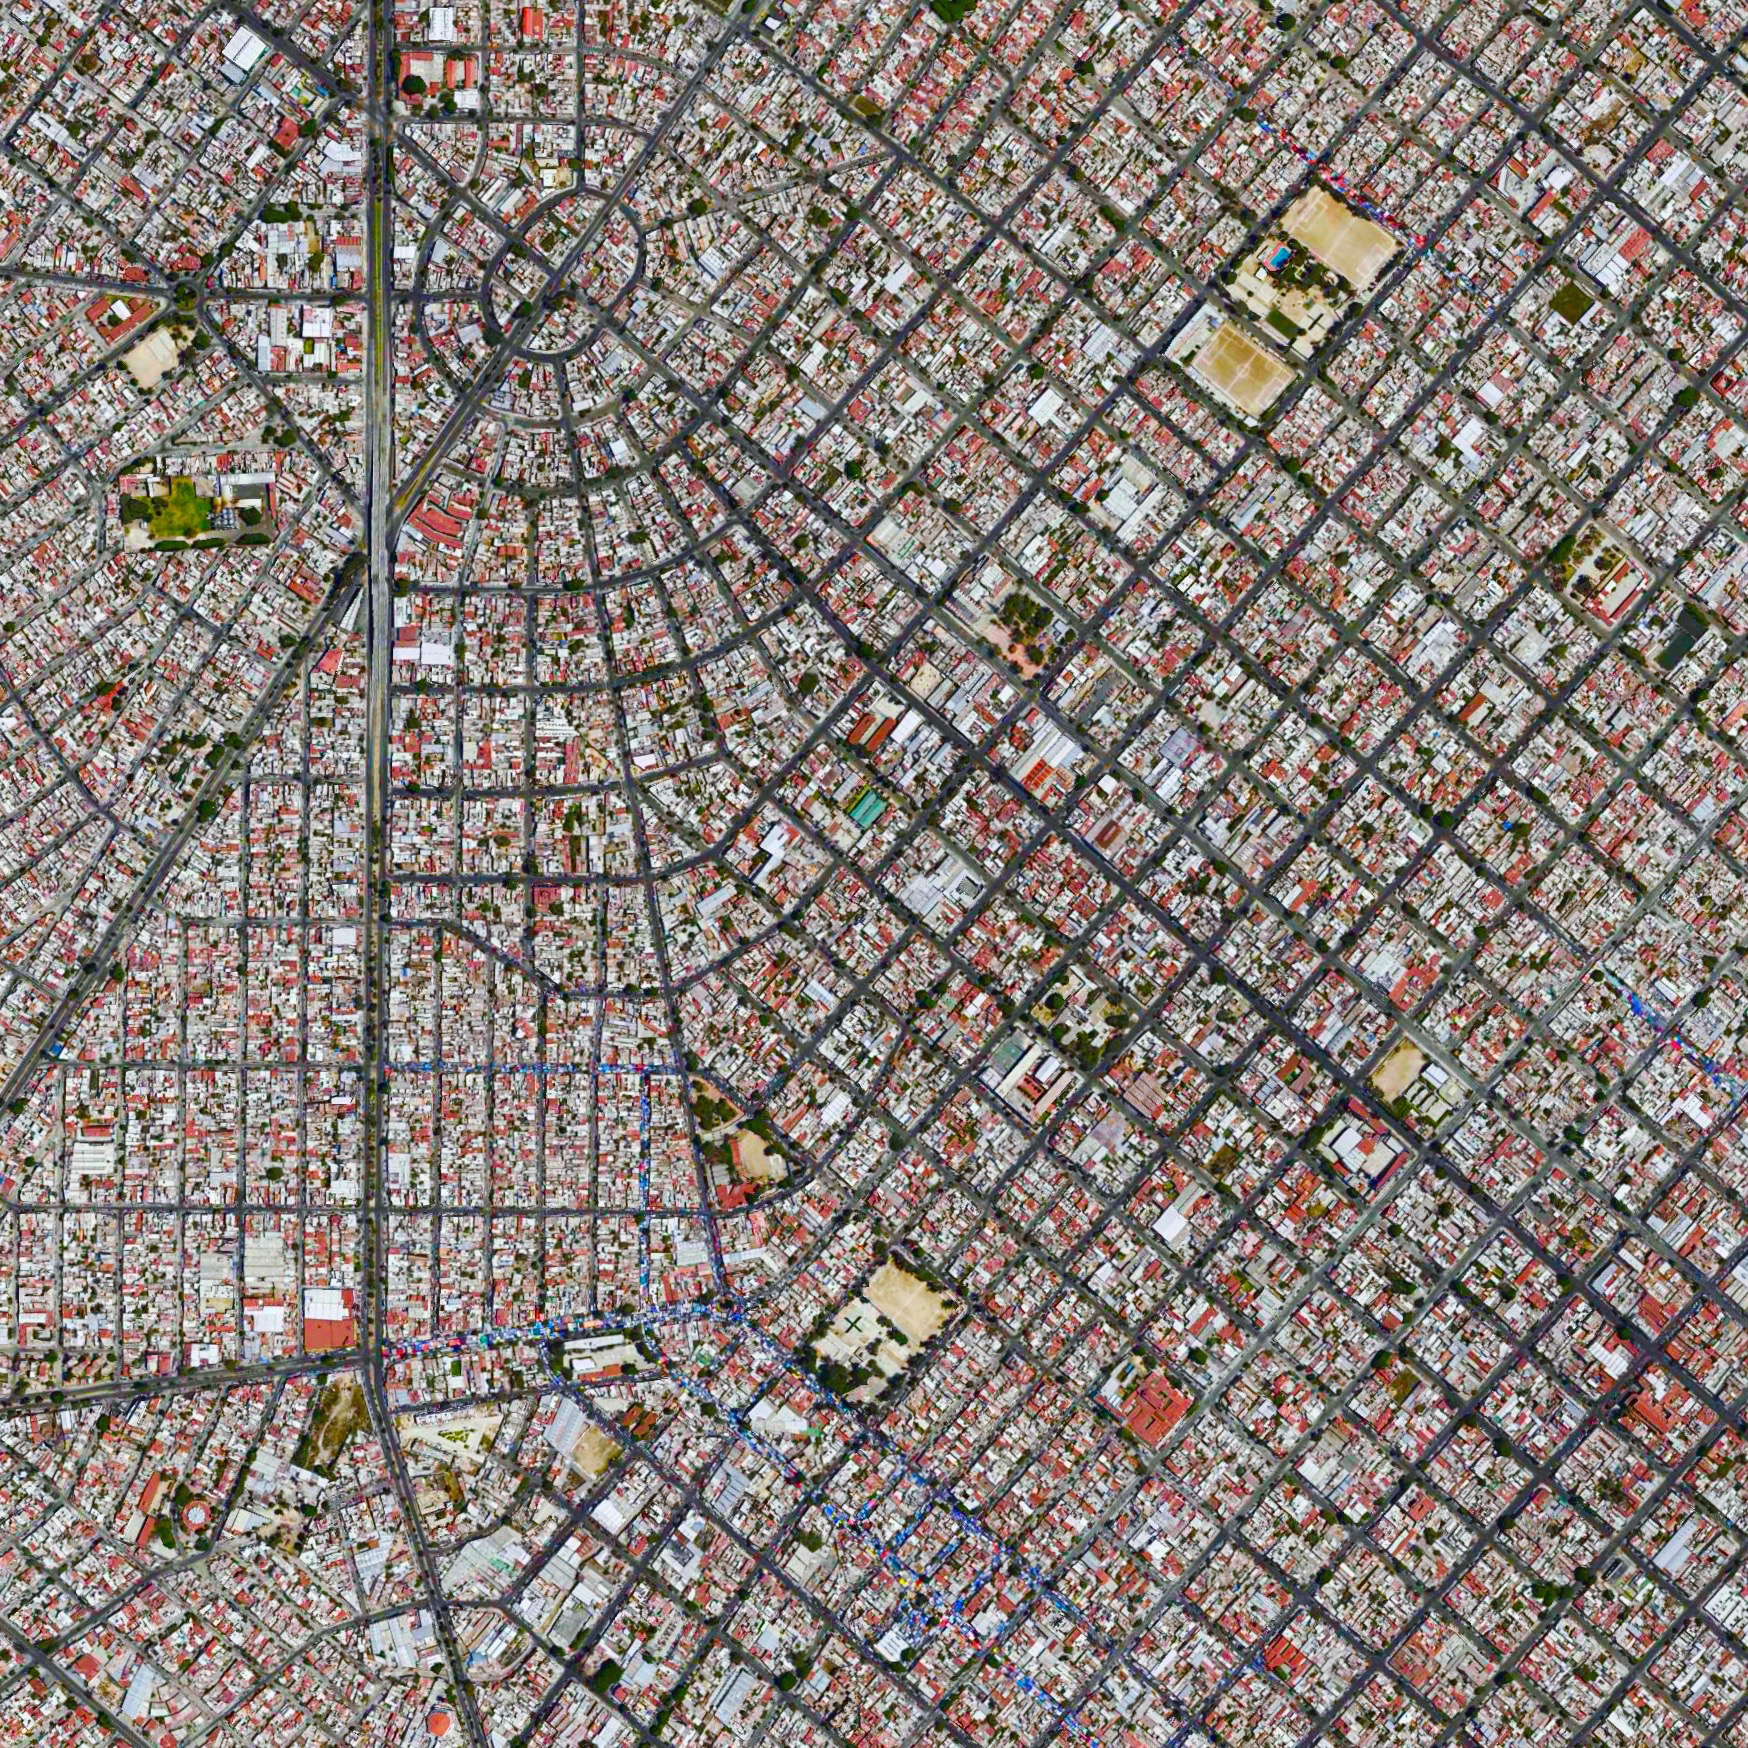 1/24/2016   Guadalajara, Mexico   20.687579999°, -103.307078268°     Guadalajara is the fourth most populous city in Mexico with a population of nearly 1.5 million. It is also one of the country's cultural centers, considered by many to be the home of mariachi music.